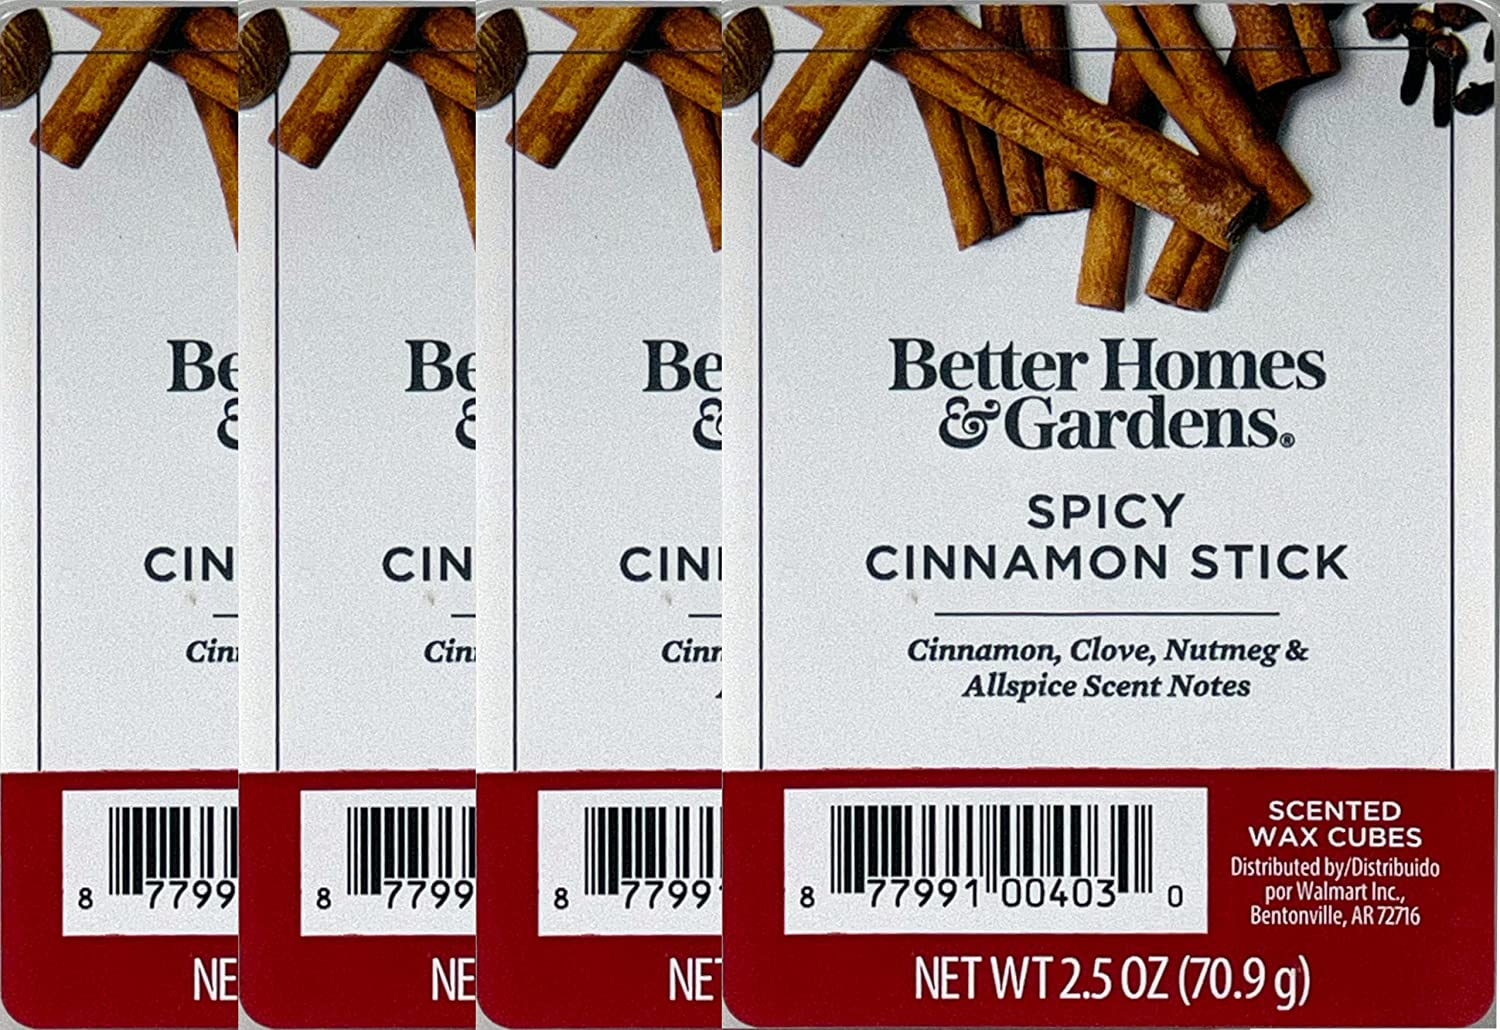 Better Homes and Gardens Spicy Cinnamon Stick Scented Wax Cubes (4 Pack)